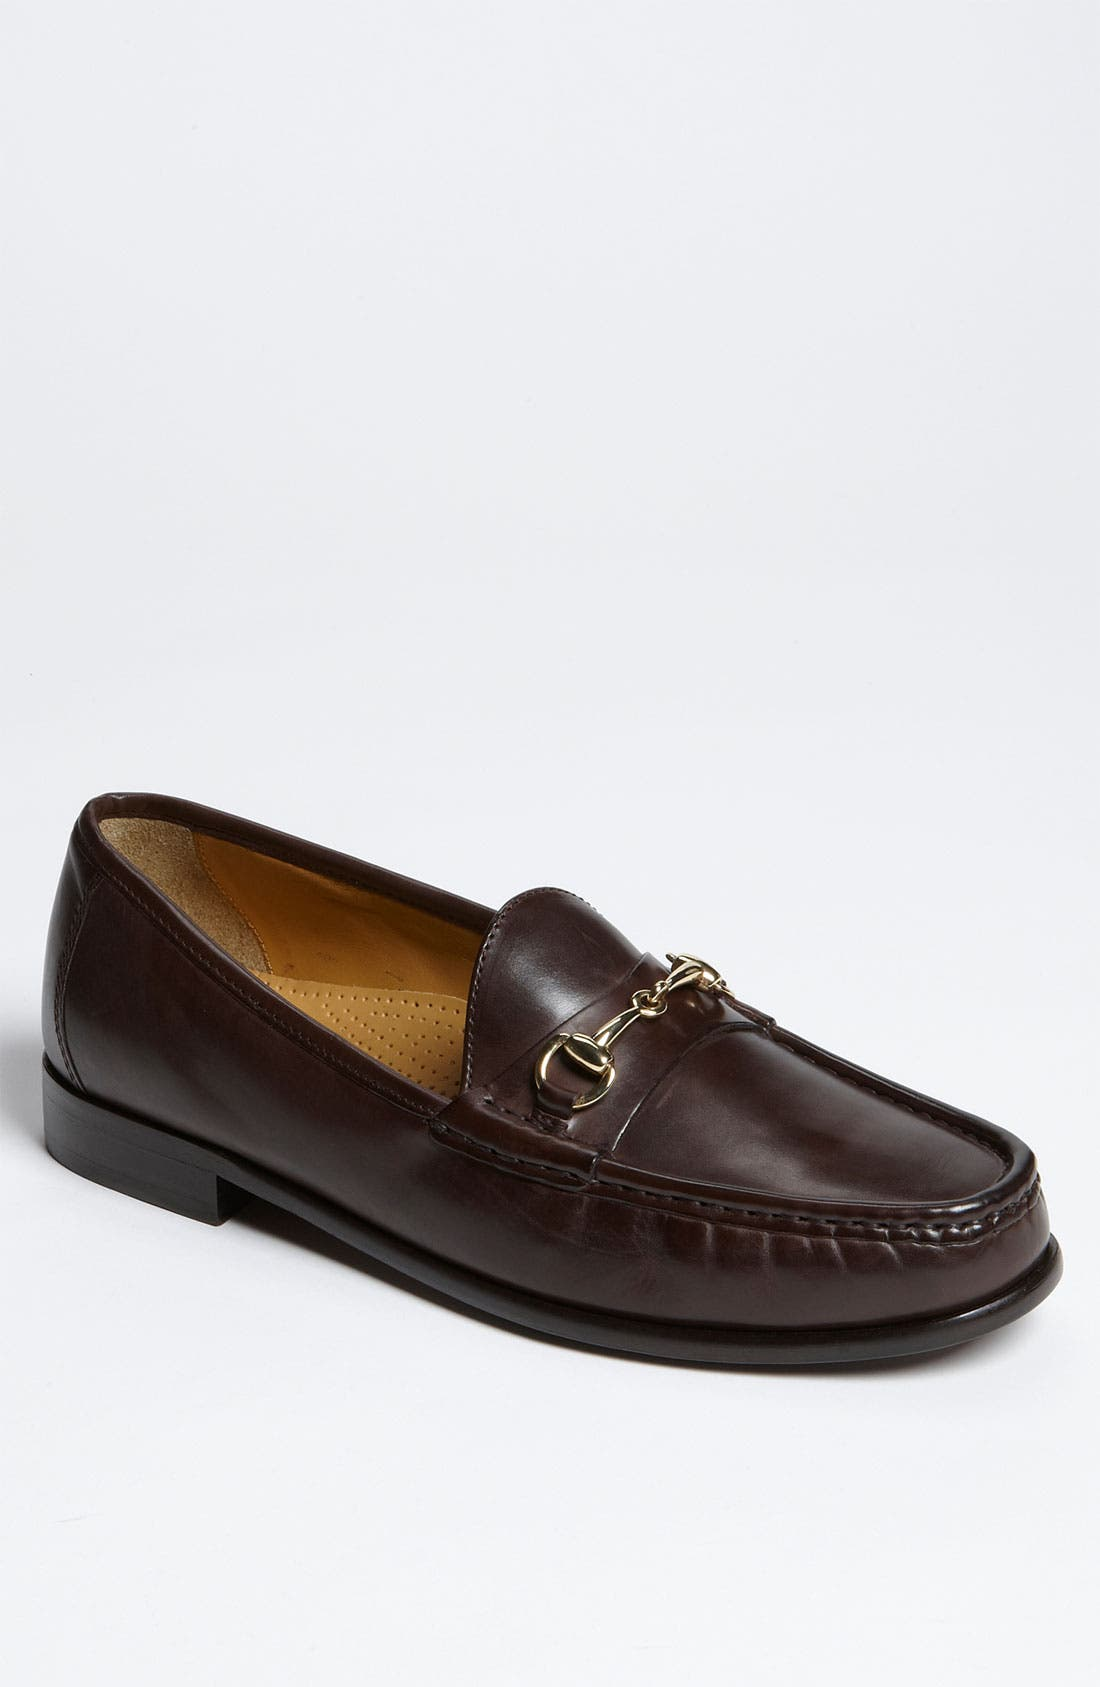 Main Image - Cole Haan 'Emory' Loafer (Online Exclusive)